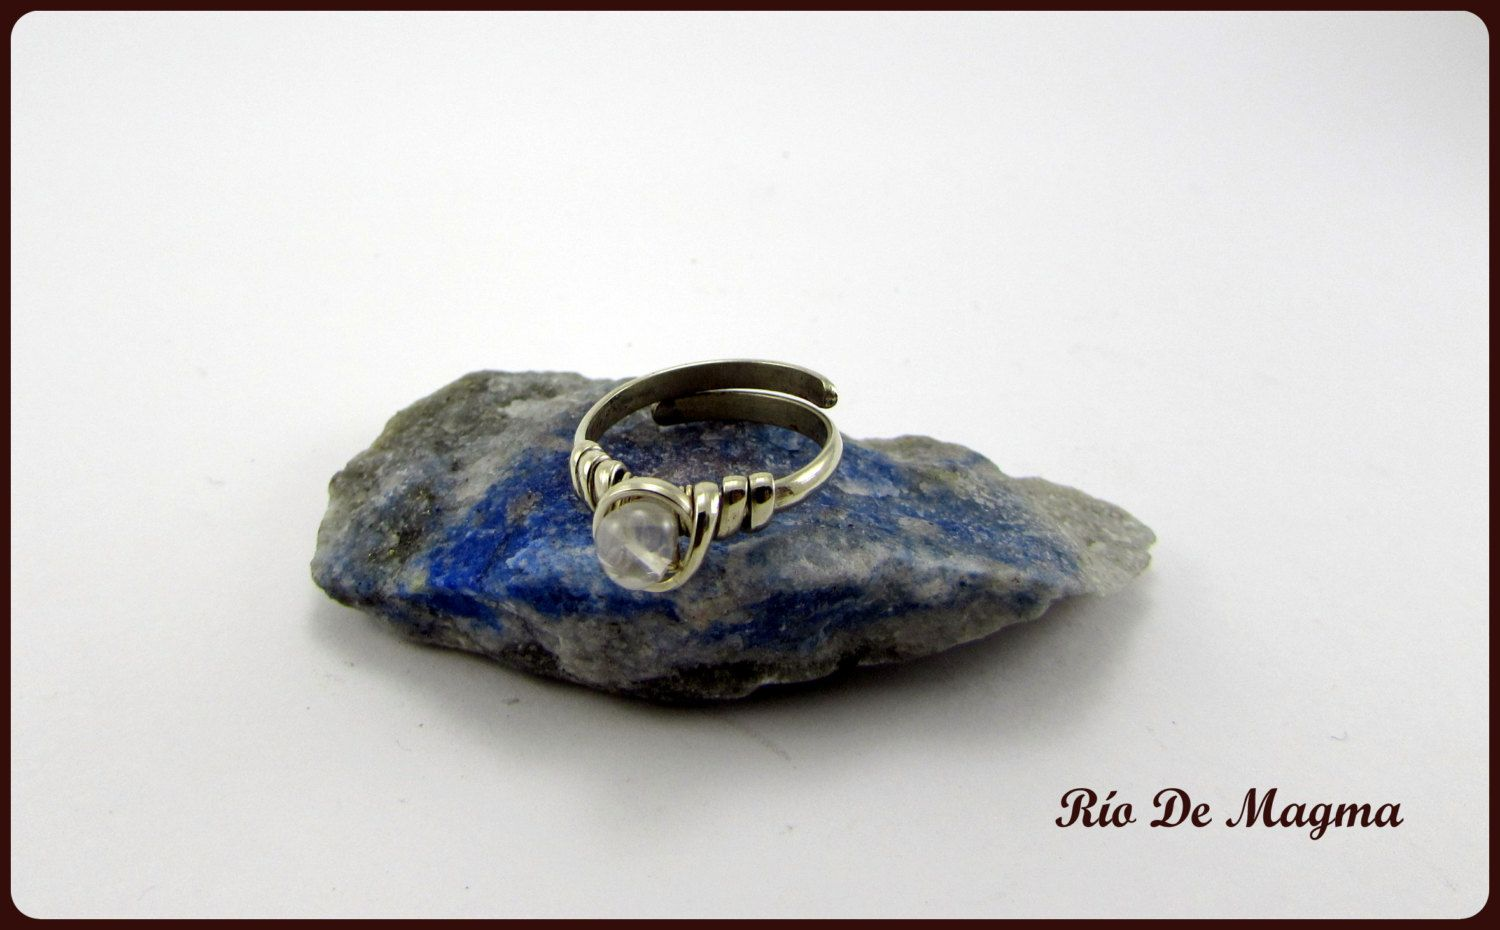 Gentelibre Casual Quartz Wire Ring Handcrafted Free People Jewelry